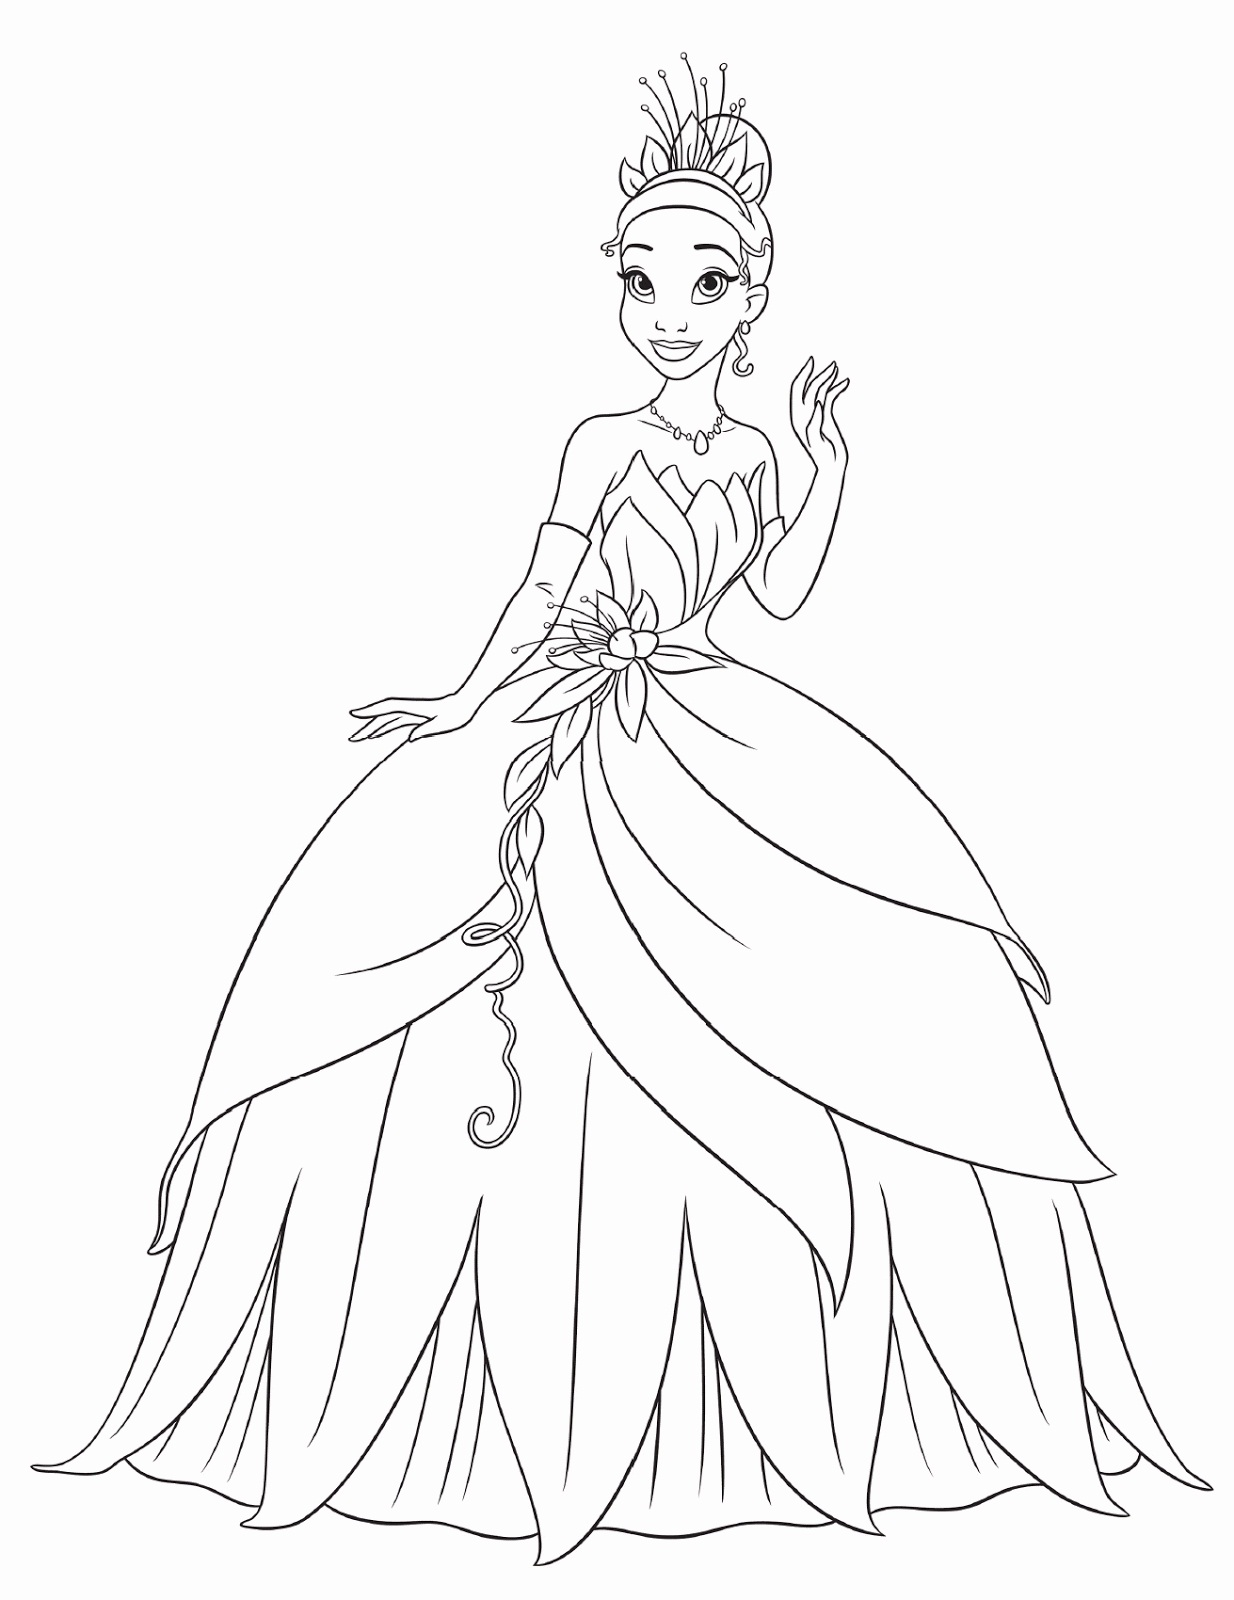 Free Coloring Pages Of Princess Gowns Princess Images Printable